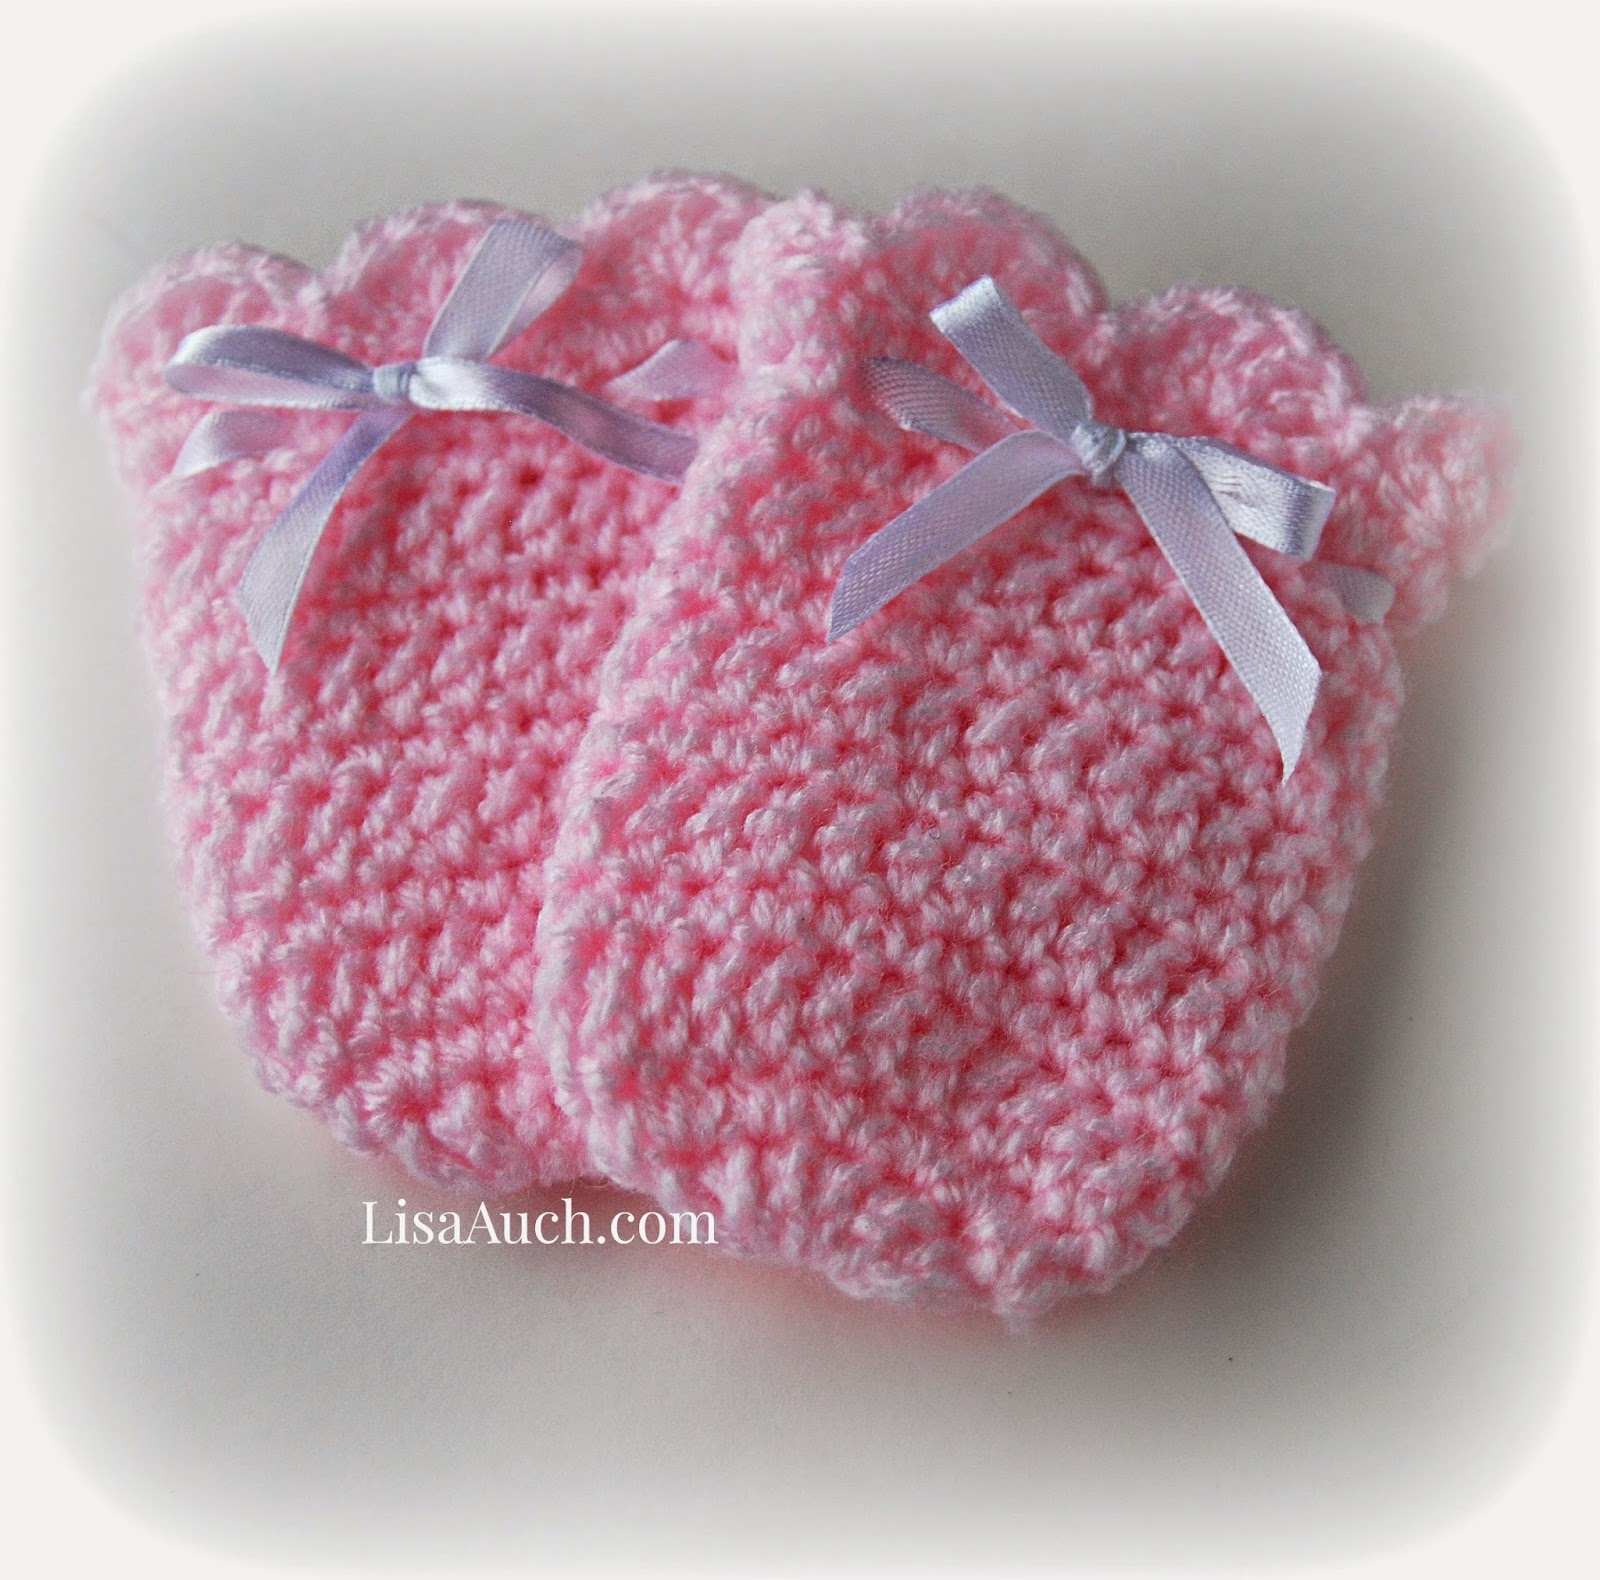 Crochet Baby Mittens   Vintage Swing Crochet Baby Mitts A Free ...